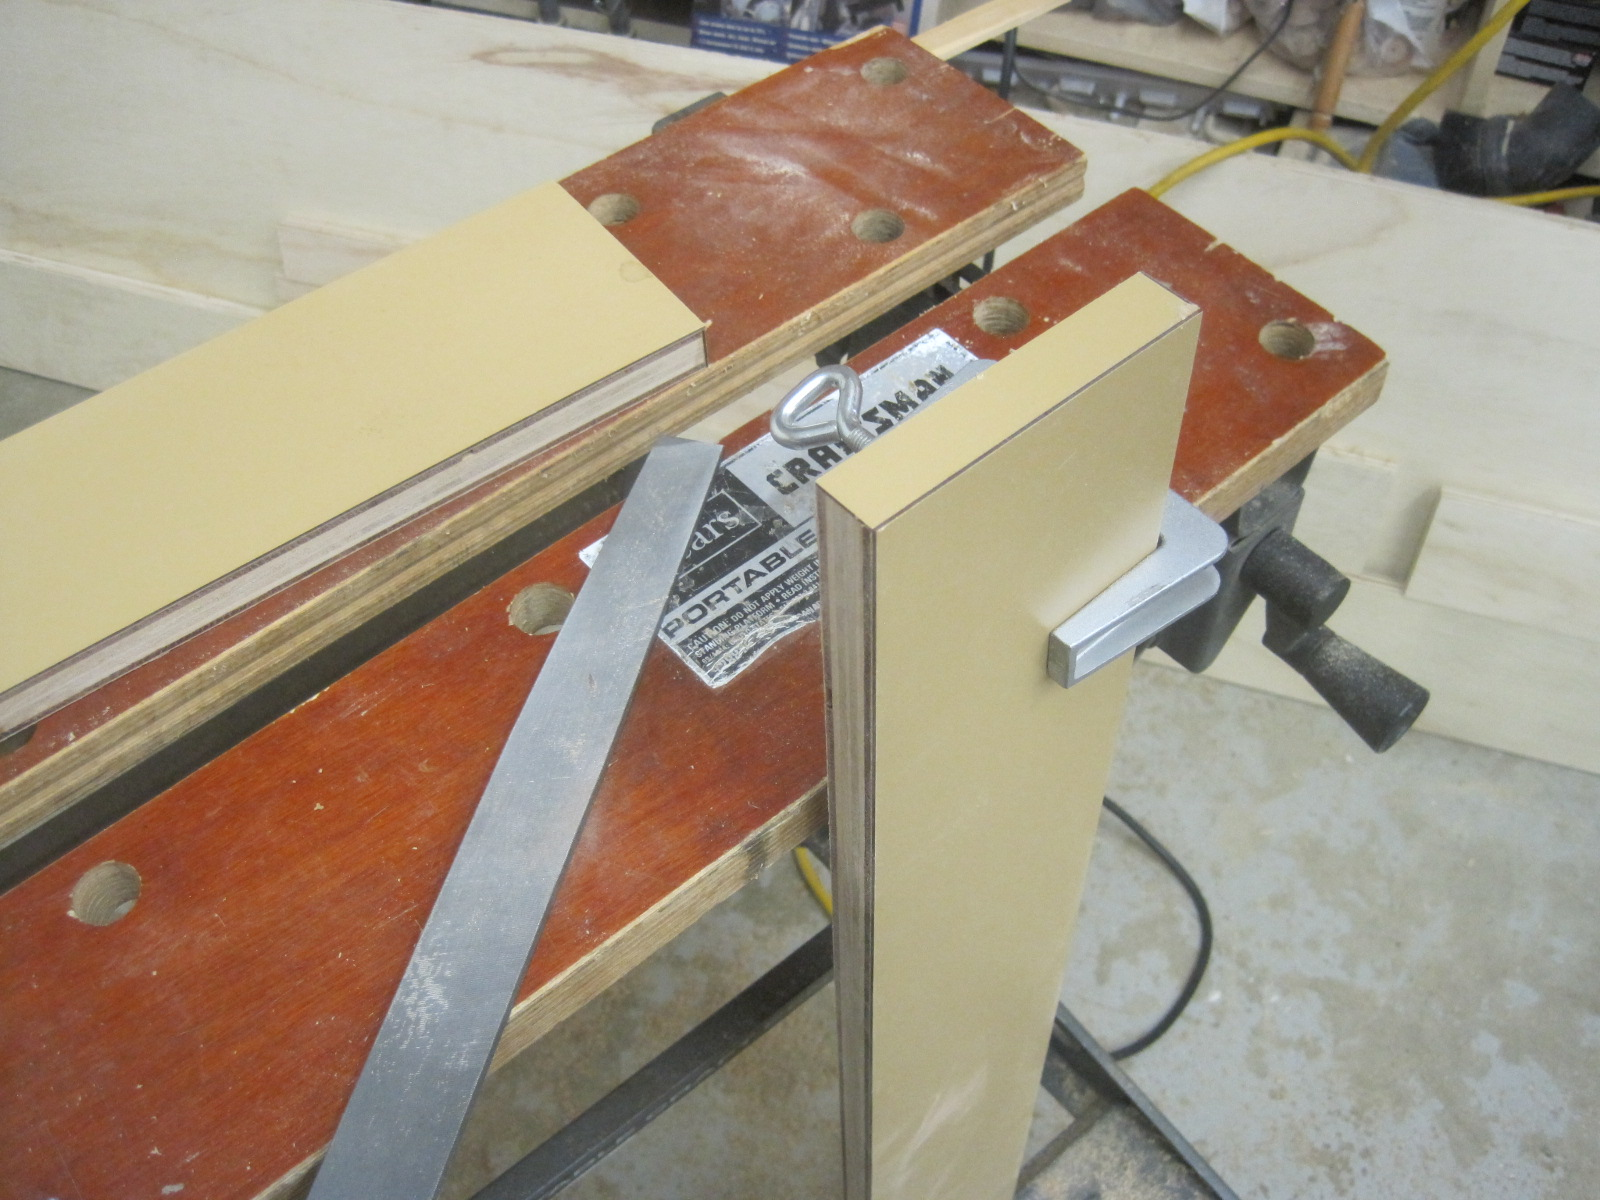 5 basic clamps for every woodworking shop - router forums